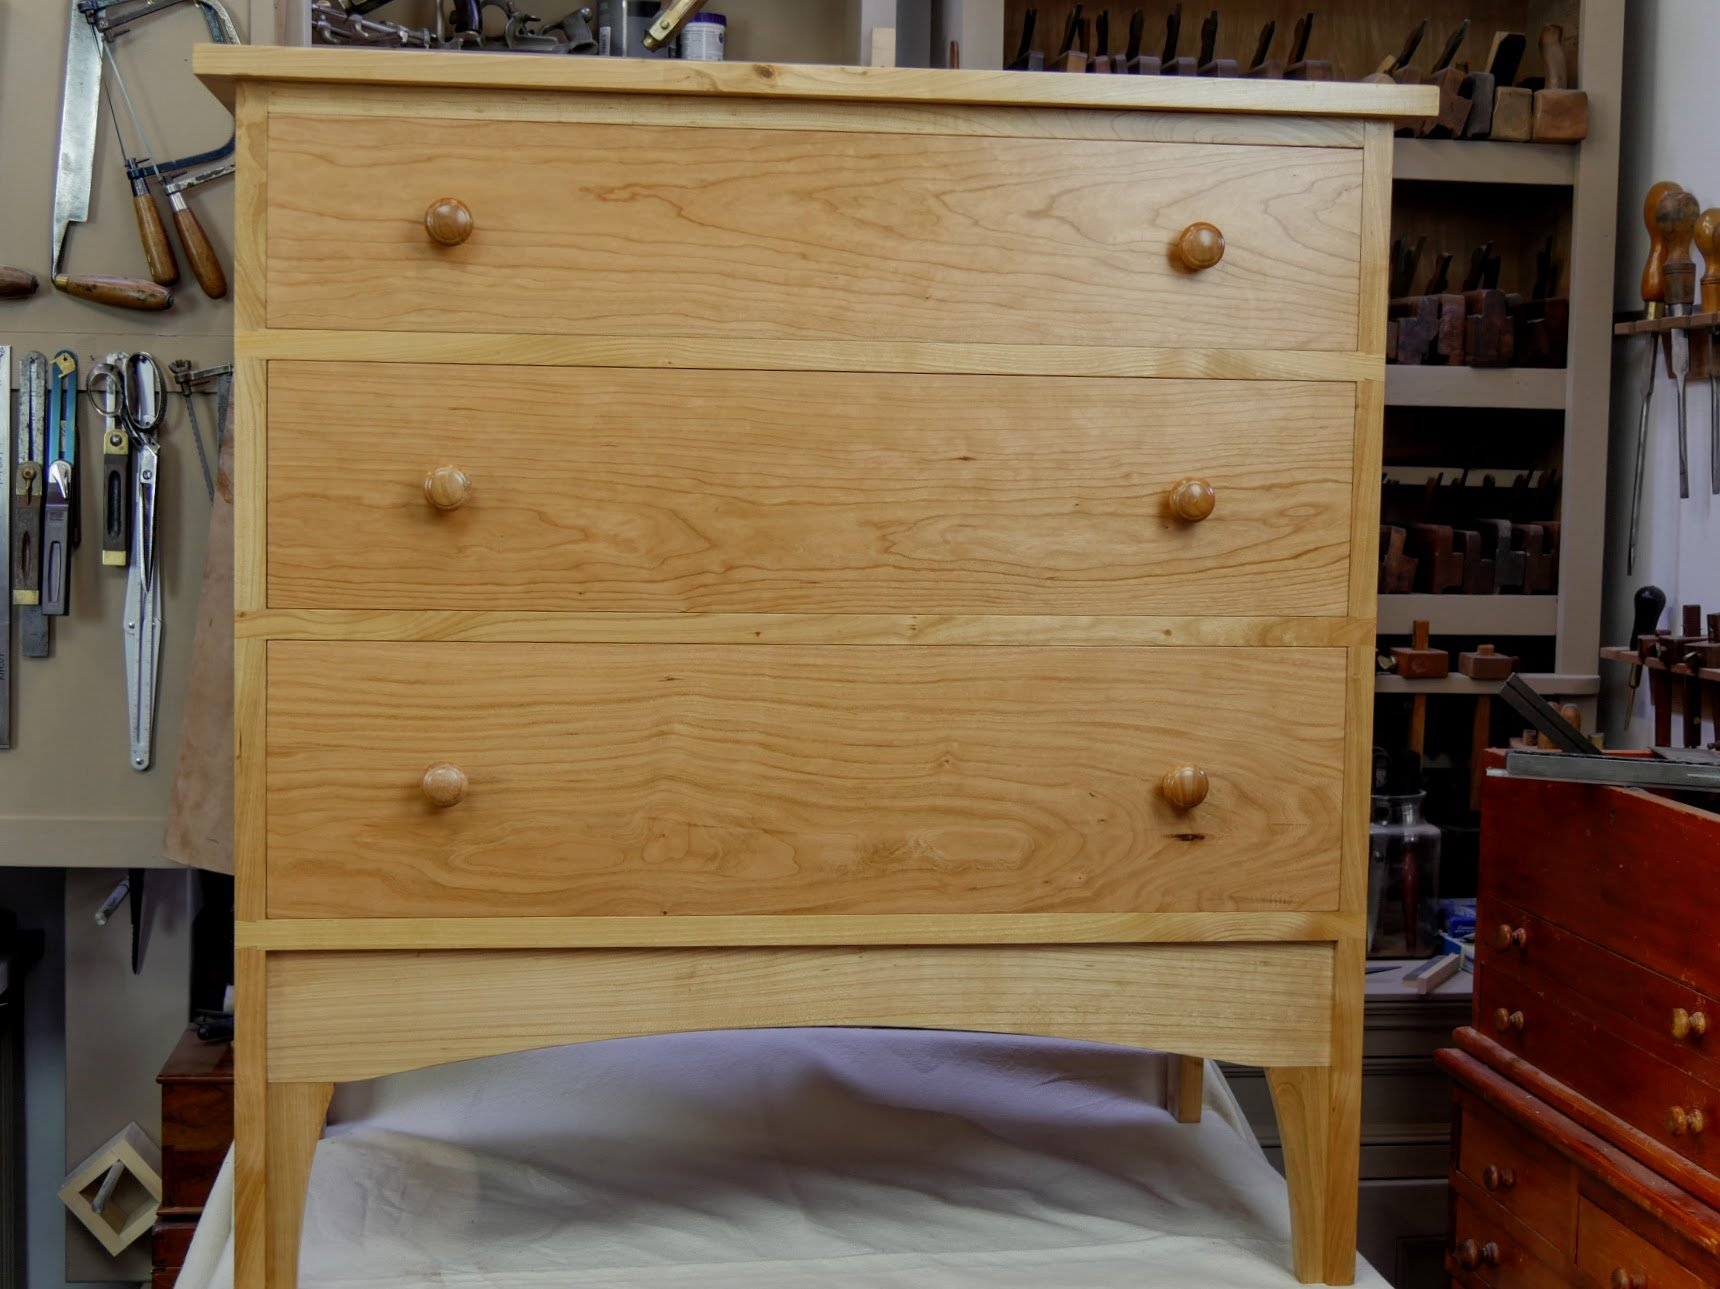 paul sellers workshop. as it was in the cherry chest of drawers currently being built now wwmc, there are hidden complexities to enhance project. this case, we once again paul sellers workshop